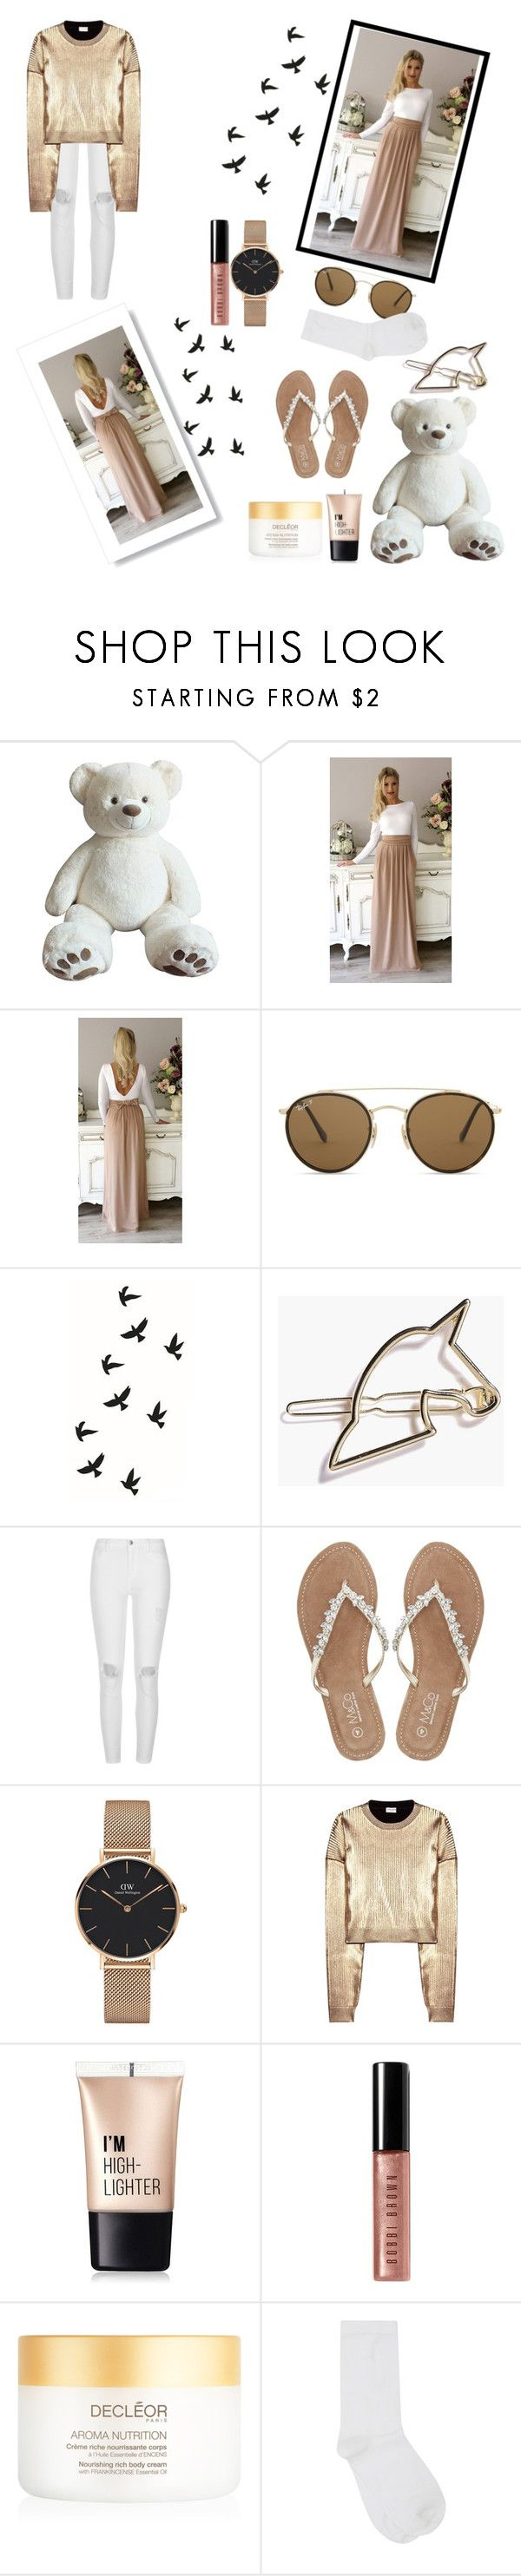 """""""Gold fashion💫⭐️🌟✨"""" by uniandcorn1 ❤ liked on Polyvore featuring Ray-Ban, River Island, M&Co, Daniel Wellington, Yves Saint Laurent, Charlotte Russe, Bobbi Brown Cosmetics, Aroma and plus size dresses"""